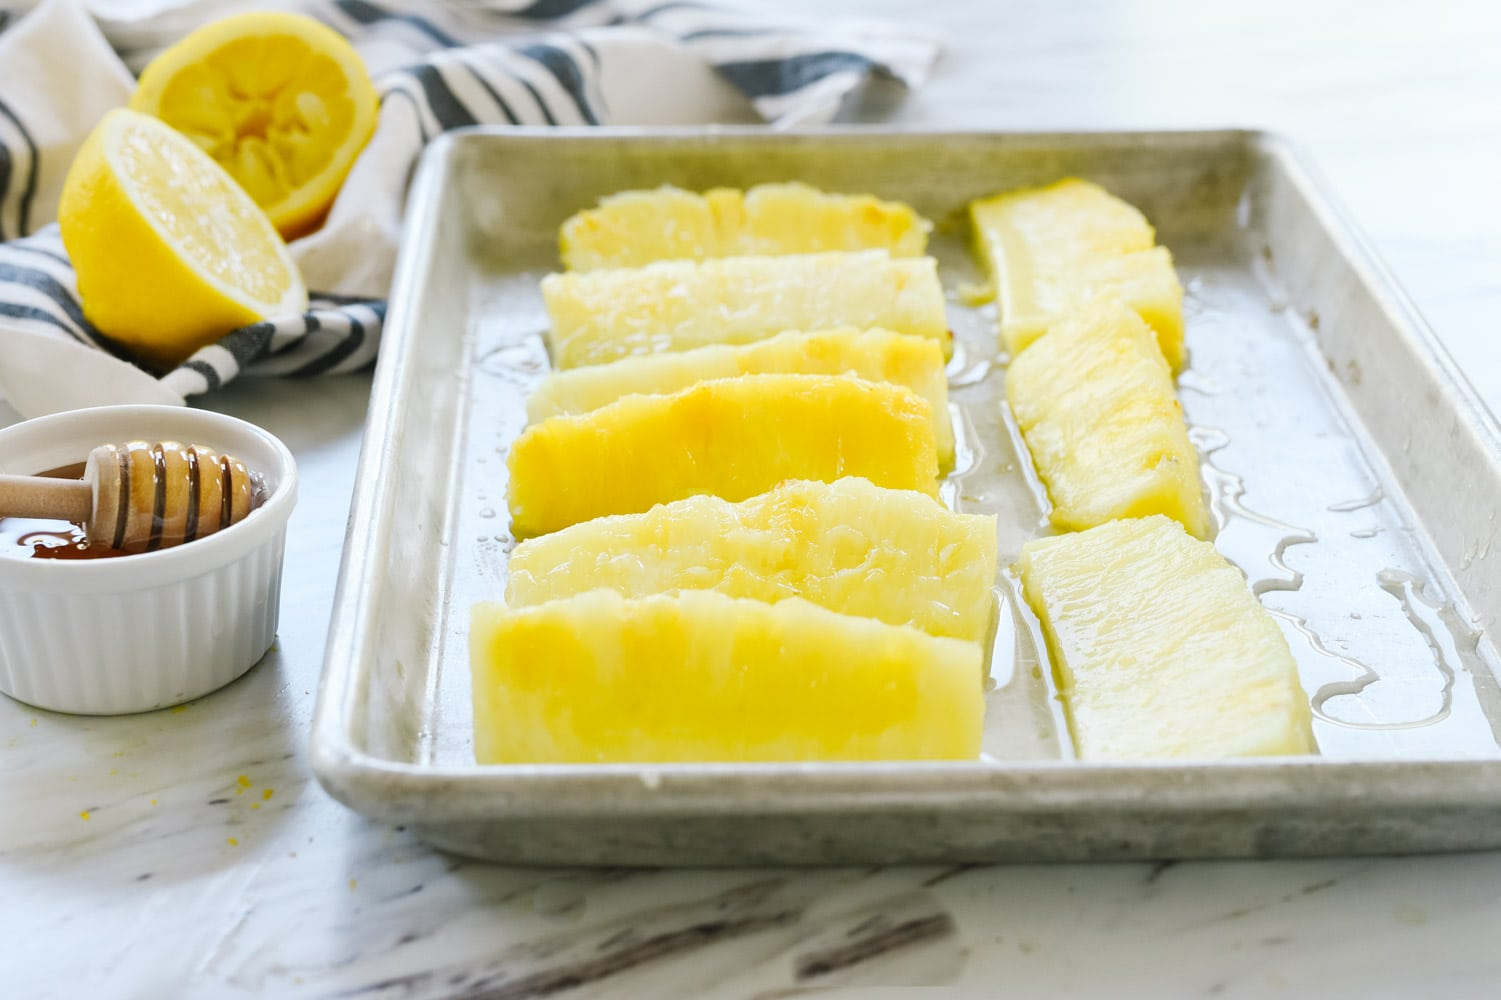 Pineapple spears on a baking sheet